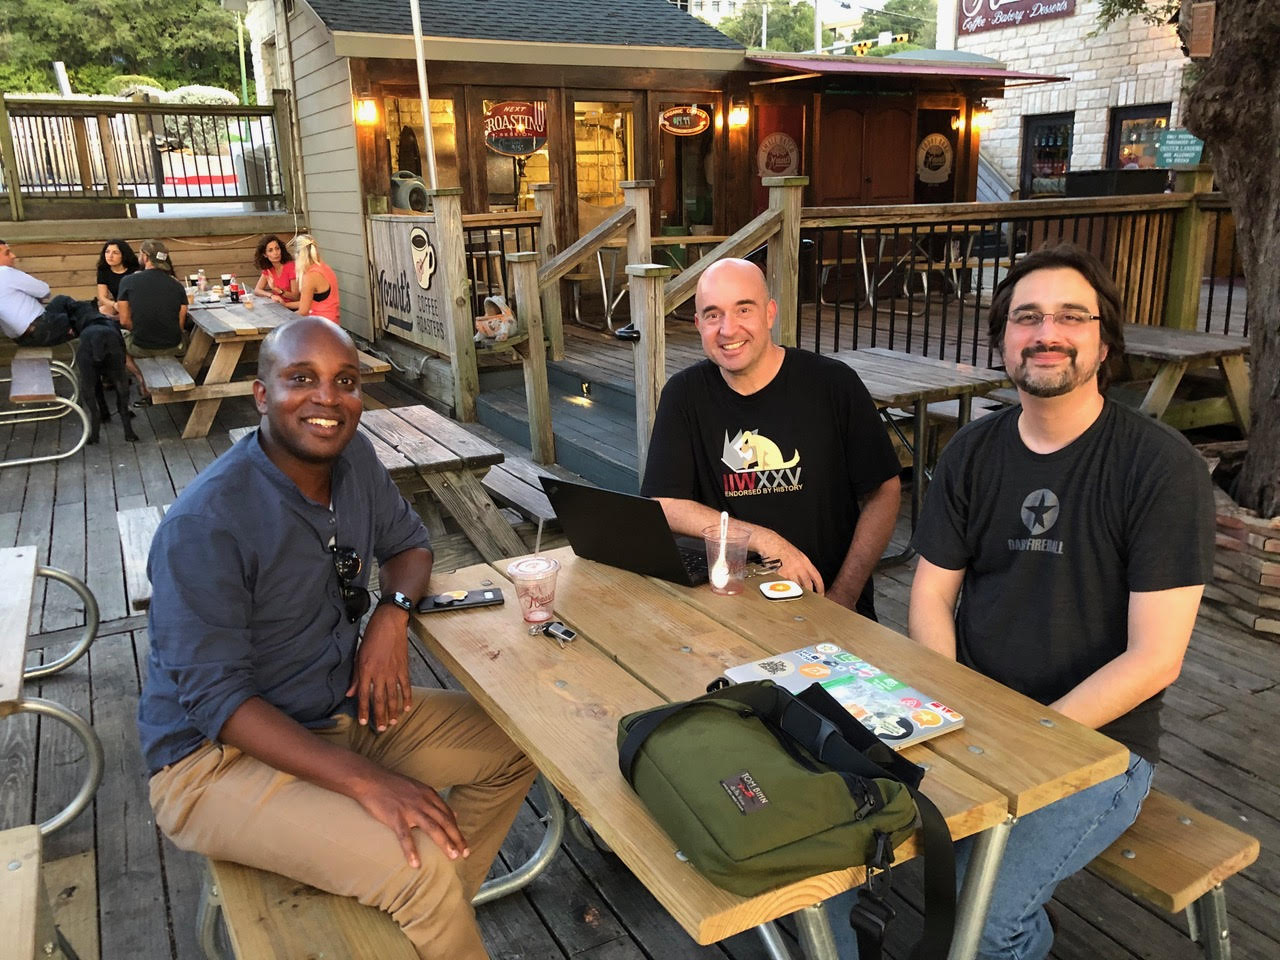 Bryan, Tom, and Manton at Mozart's Coffee, Austin, TX 2019-09-04